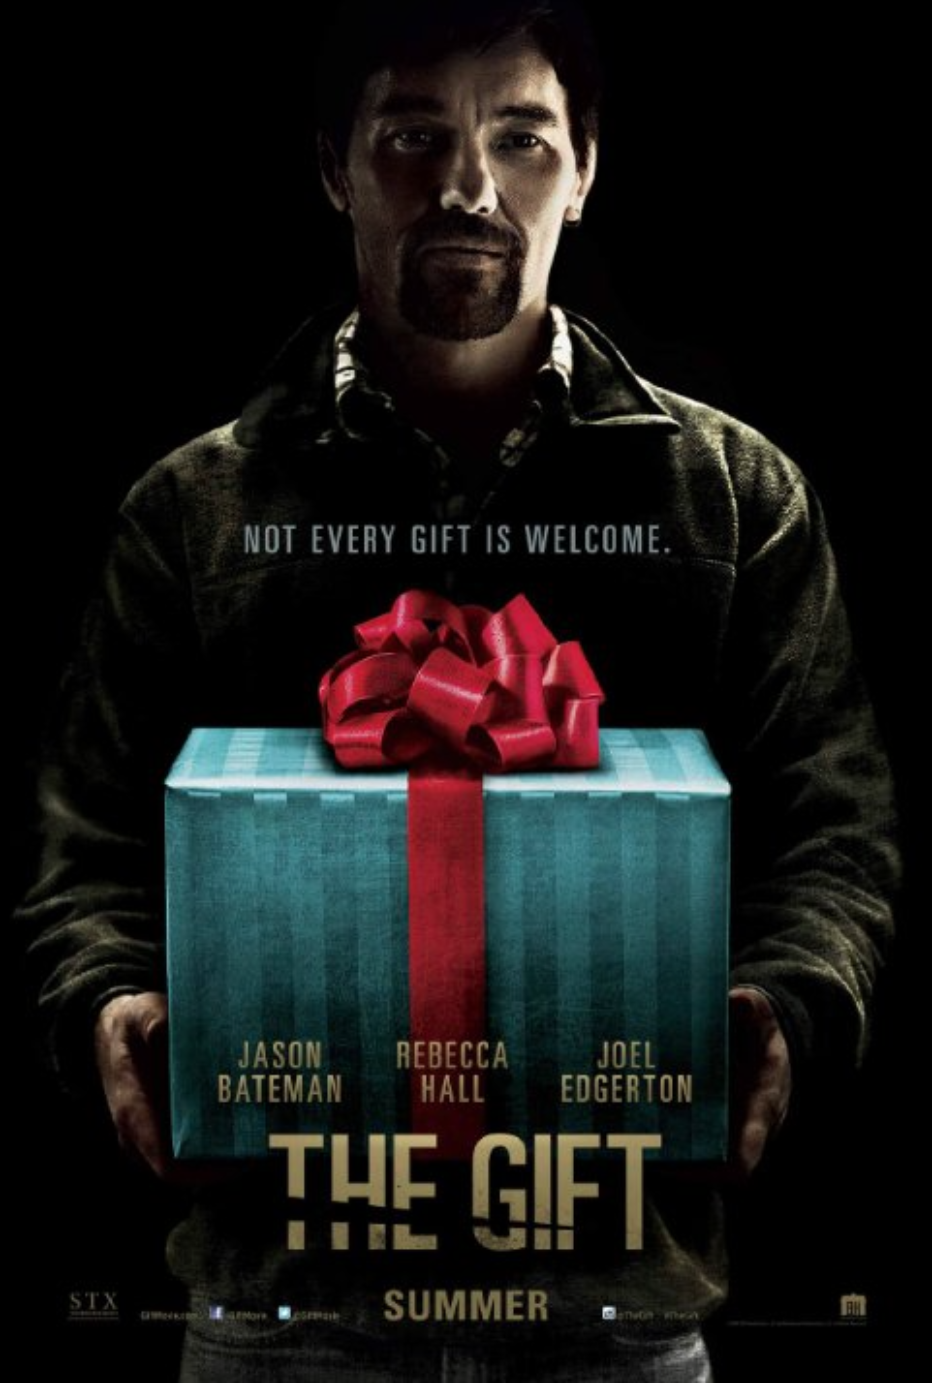 The gift #Sitges2015